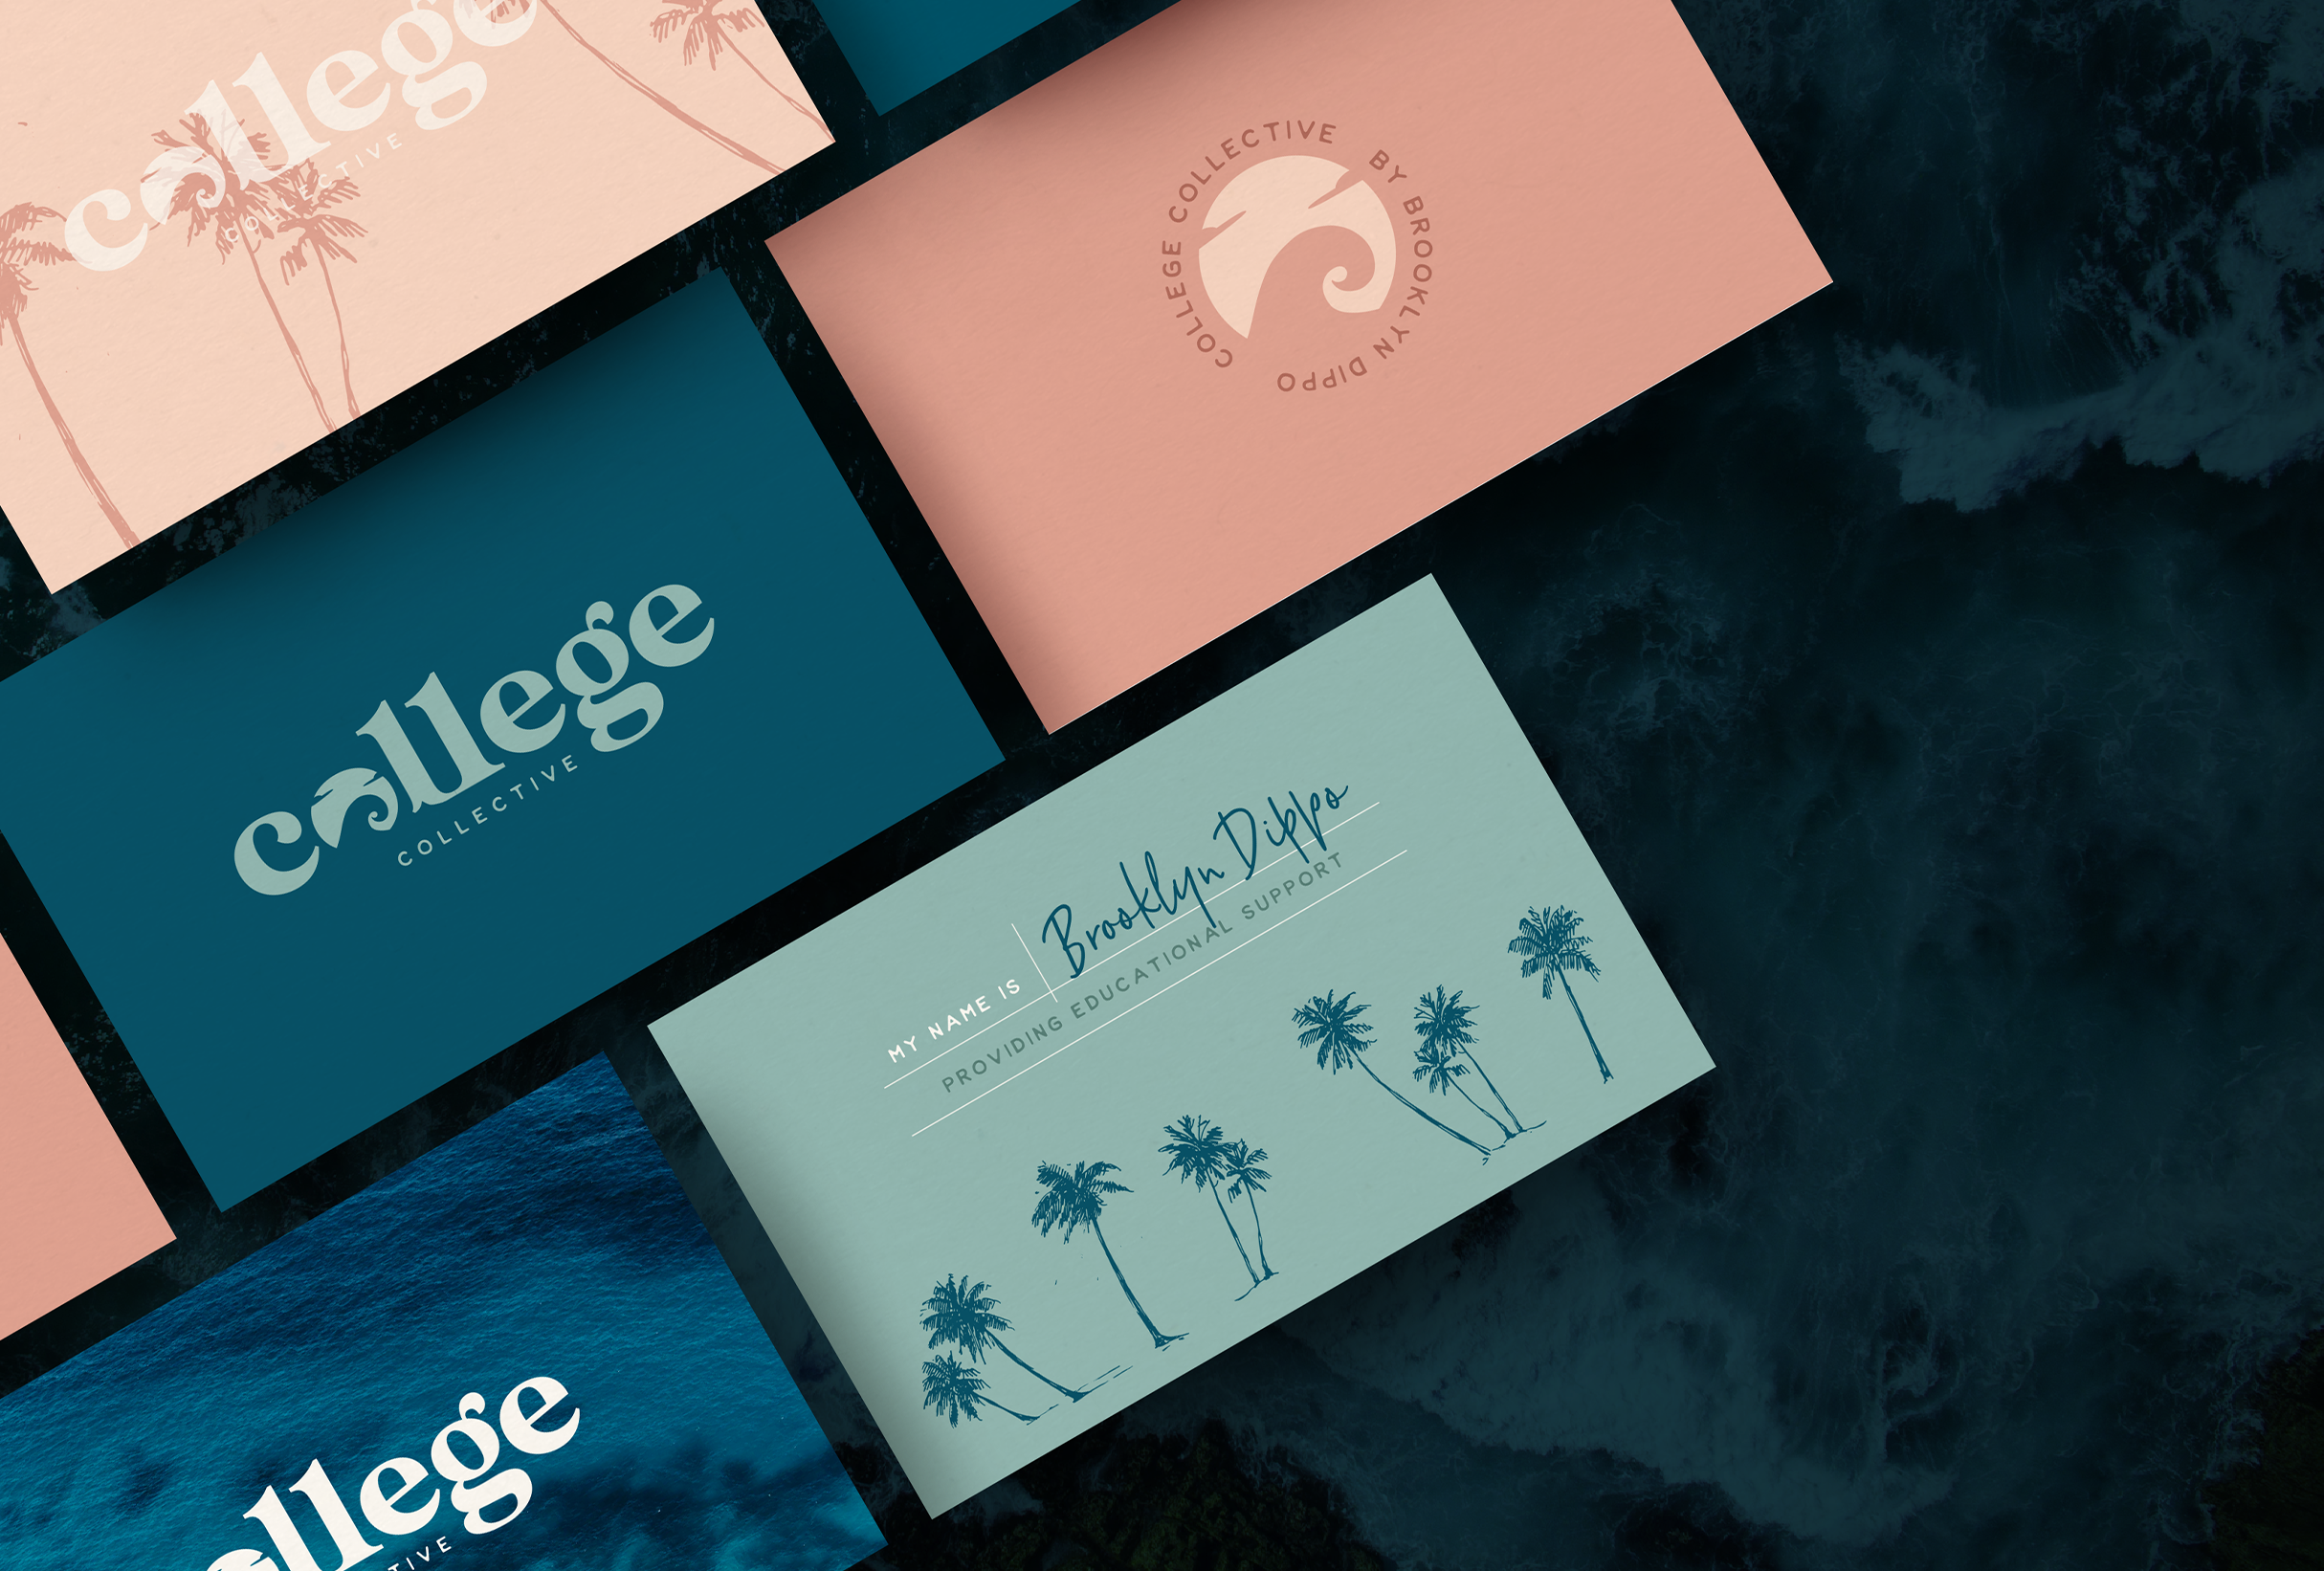 Business card design for College Collective, The College Collective membership gives students a step-by-step plan for applying to college with the support of a community full of other educational professionals and peers - designed by Wiltshire-based graphic designer, Kaye Huett